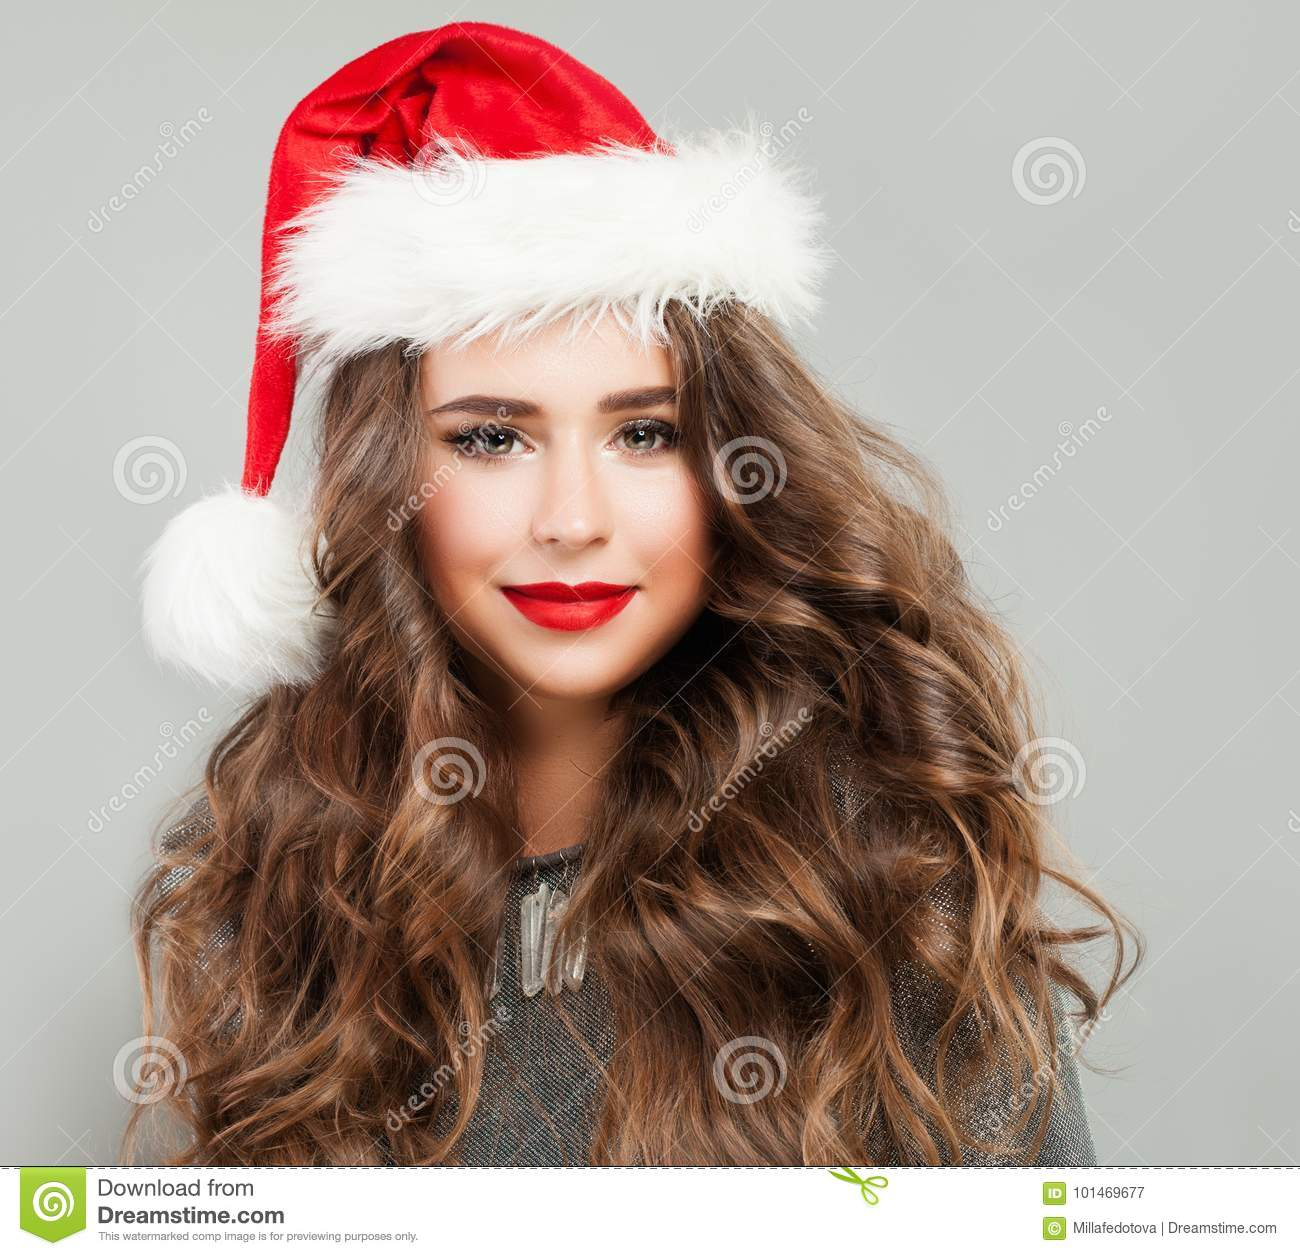 e64c912f1e1ba Christmas Woman wearing Santa Hat. Cute Young Woman Fashion Model with  Curly Hair and New Years Party Makeup